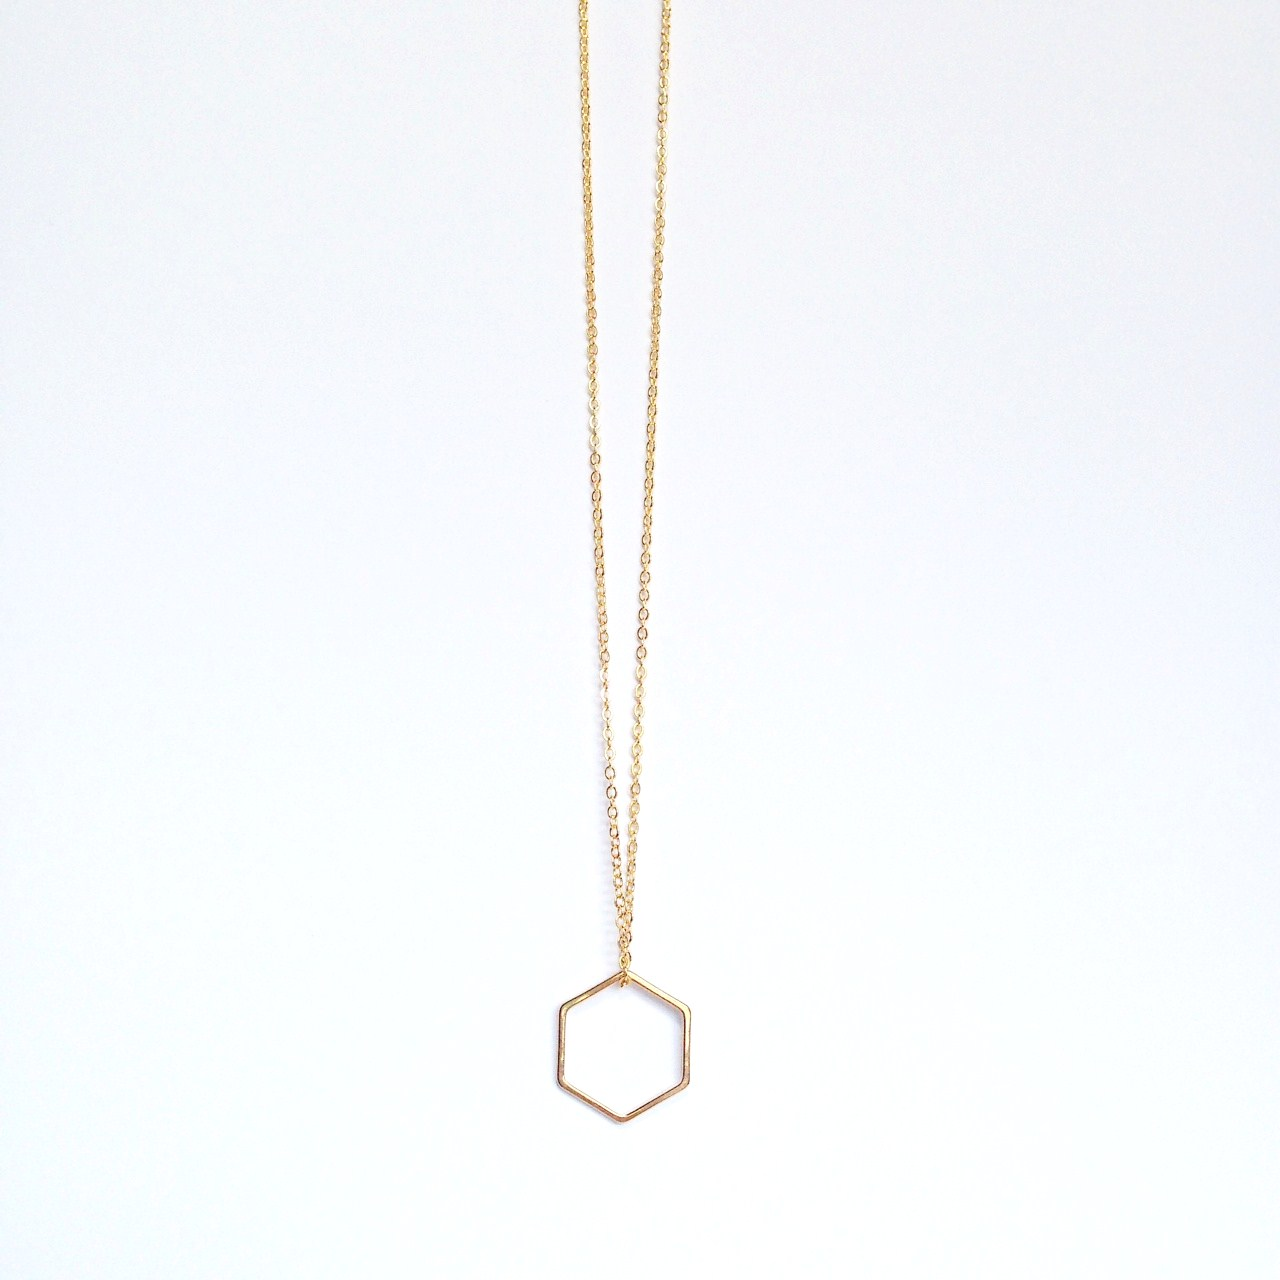 product necklace gold pine image designs dark simple of gunmetal cone on fresh